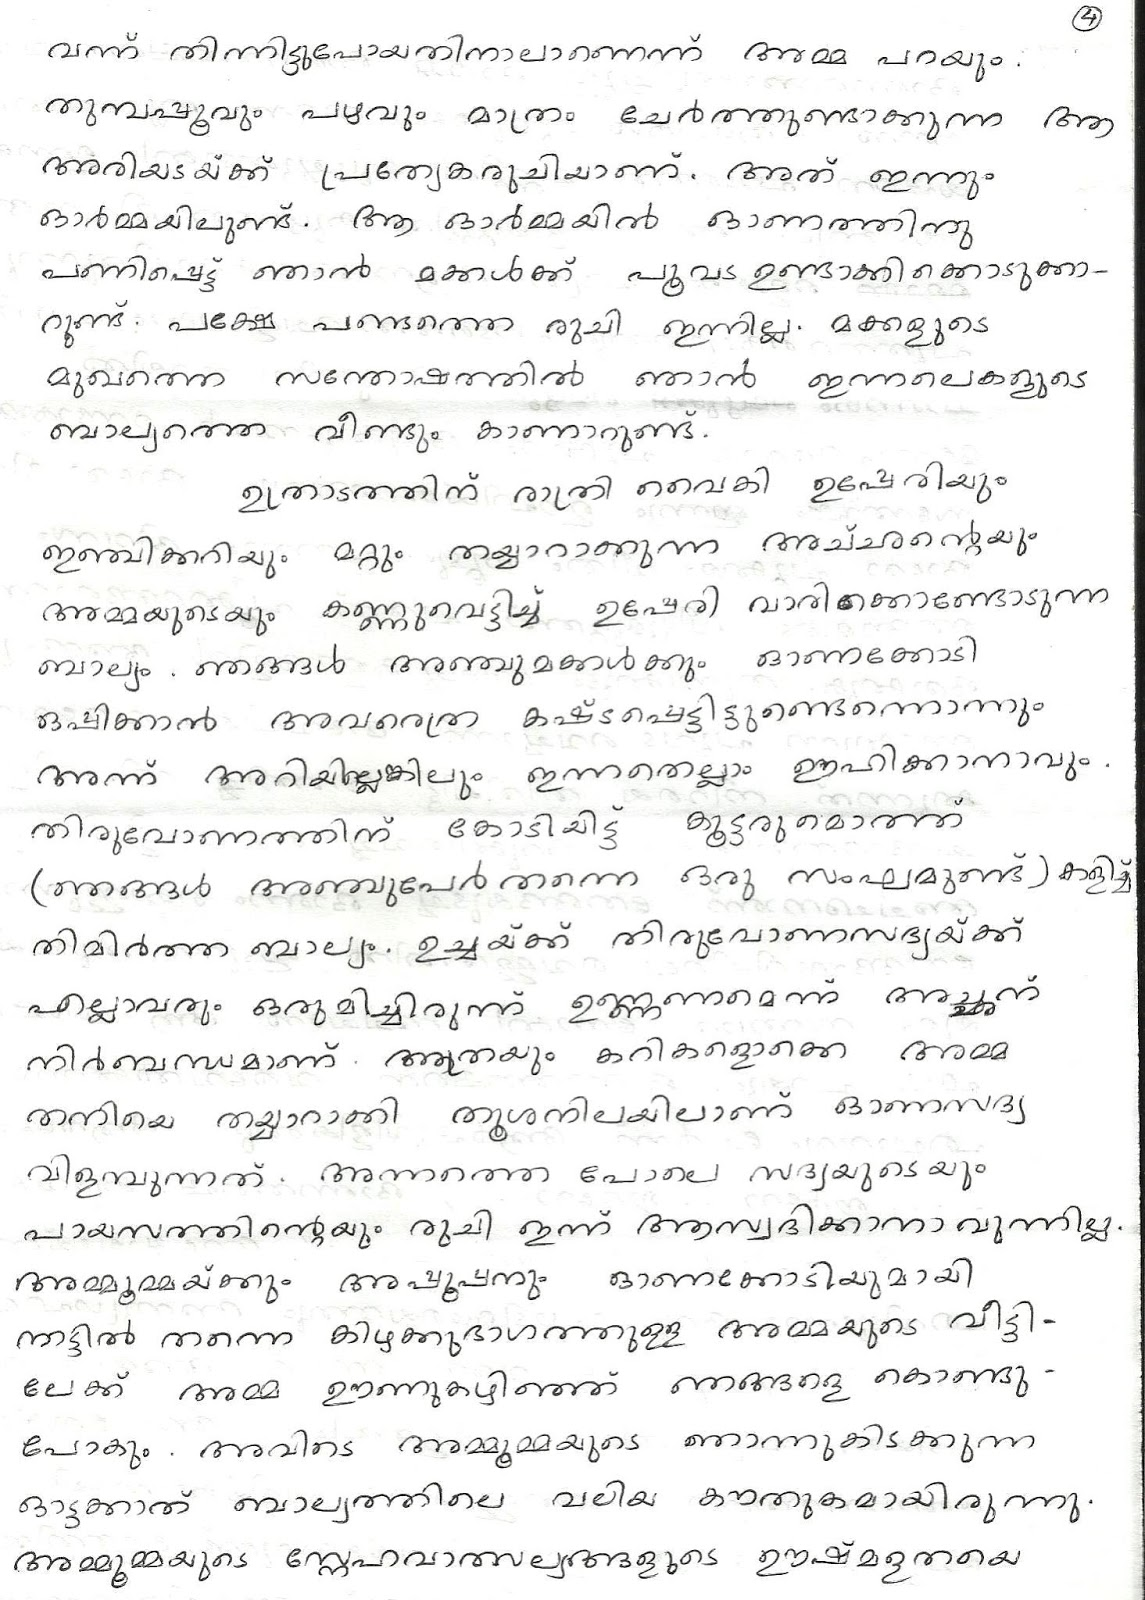 Malayalam essay on beauty of nature